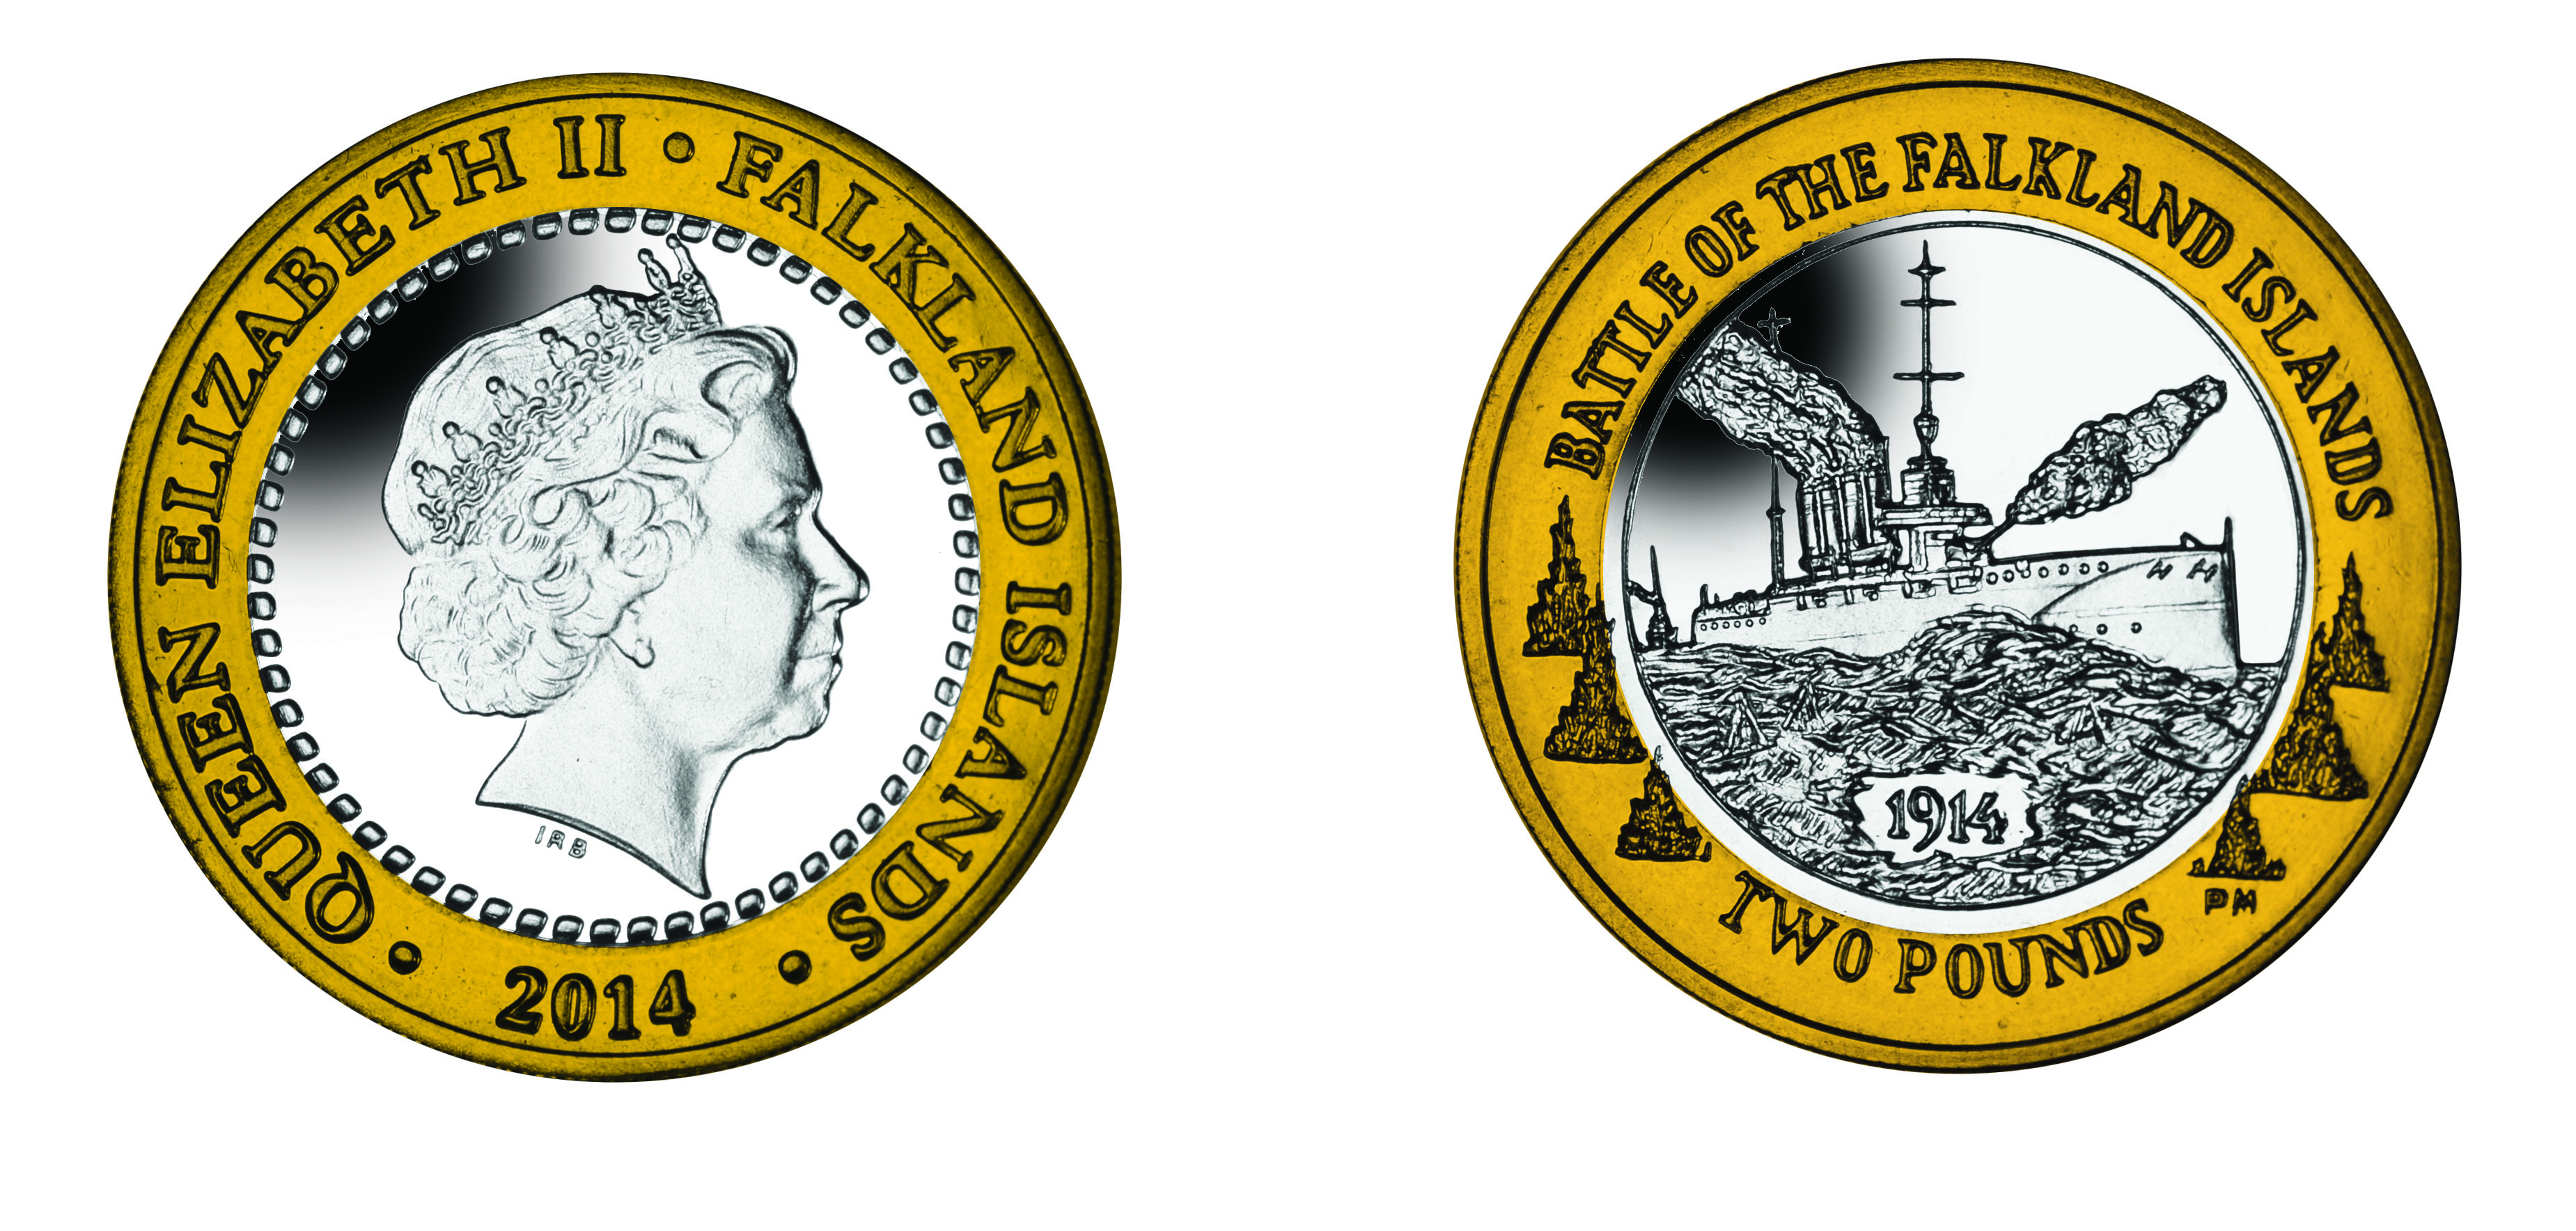 A Brief History: Looking into the World of Bi-Metal Two Pound Coins